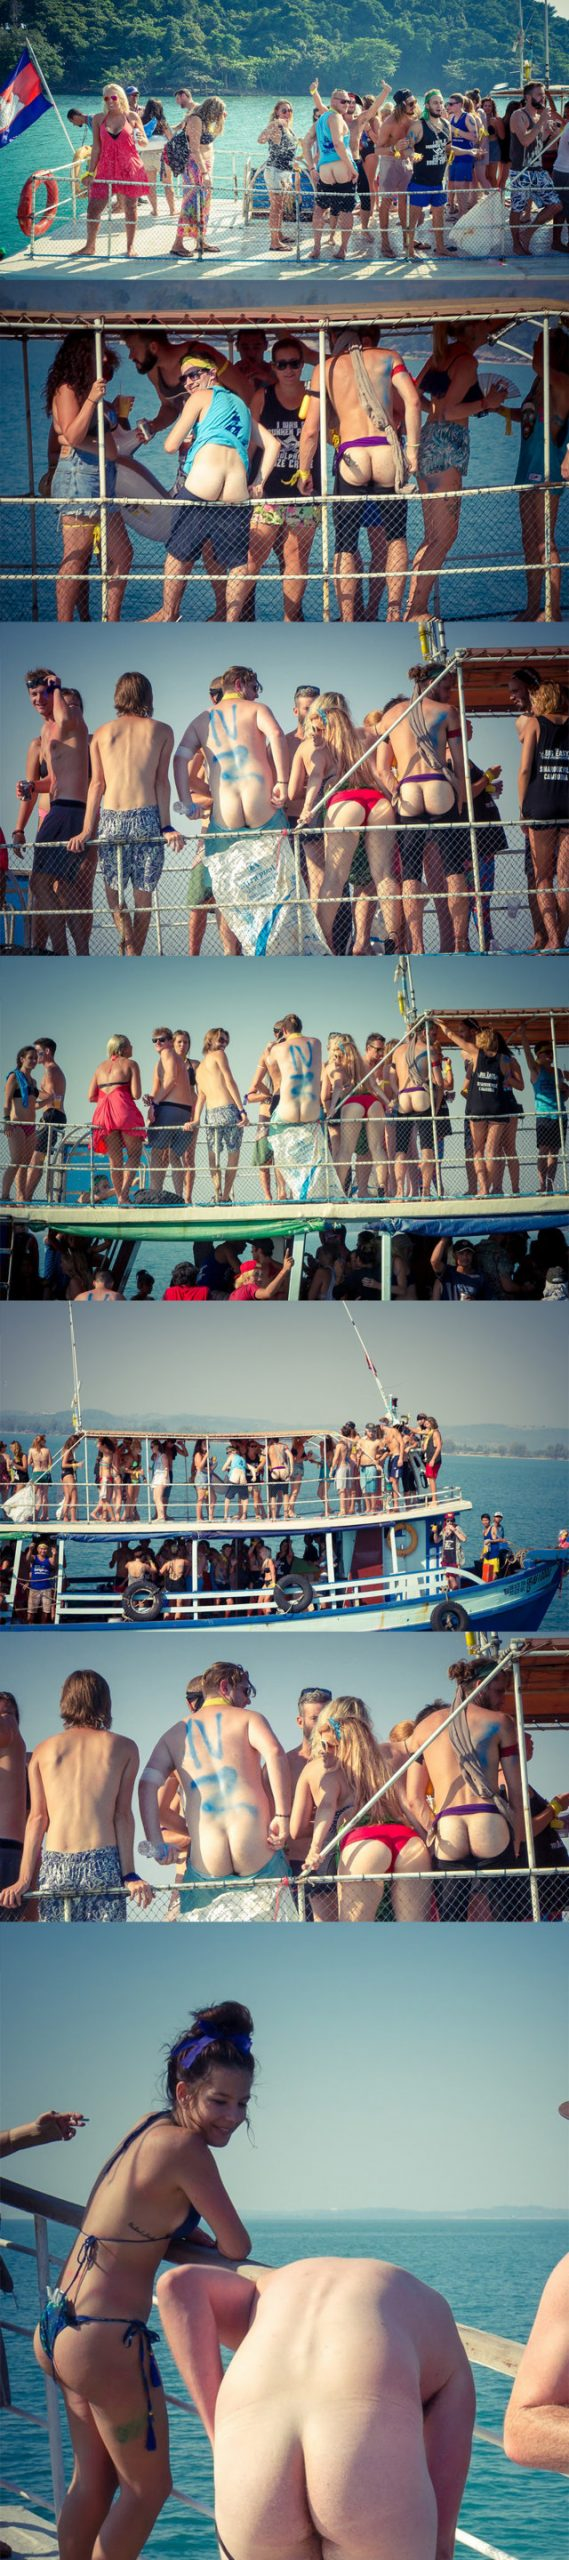 straight guys partying and stripping naked on a boat